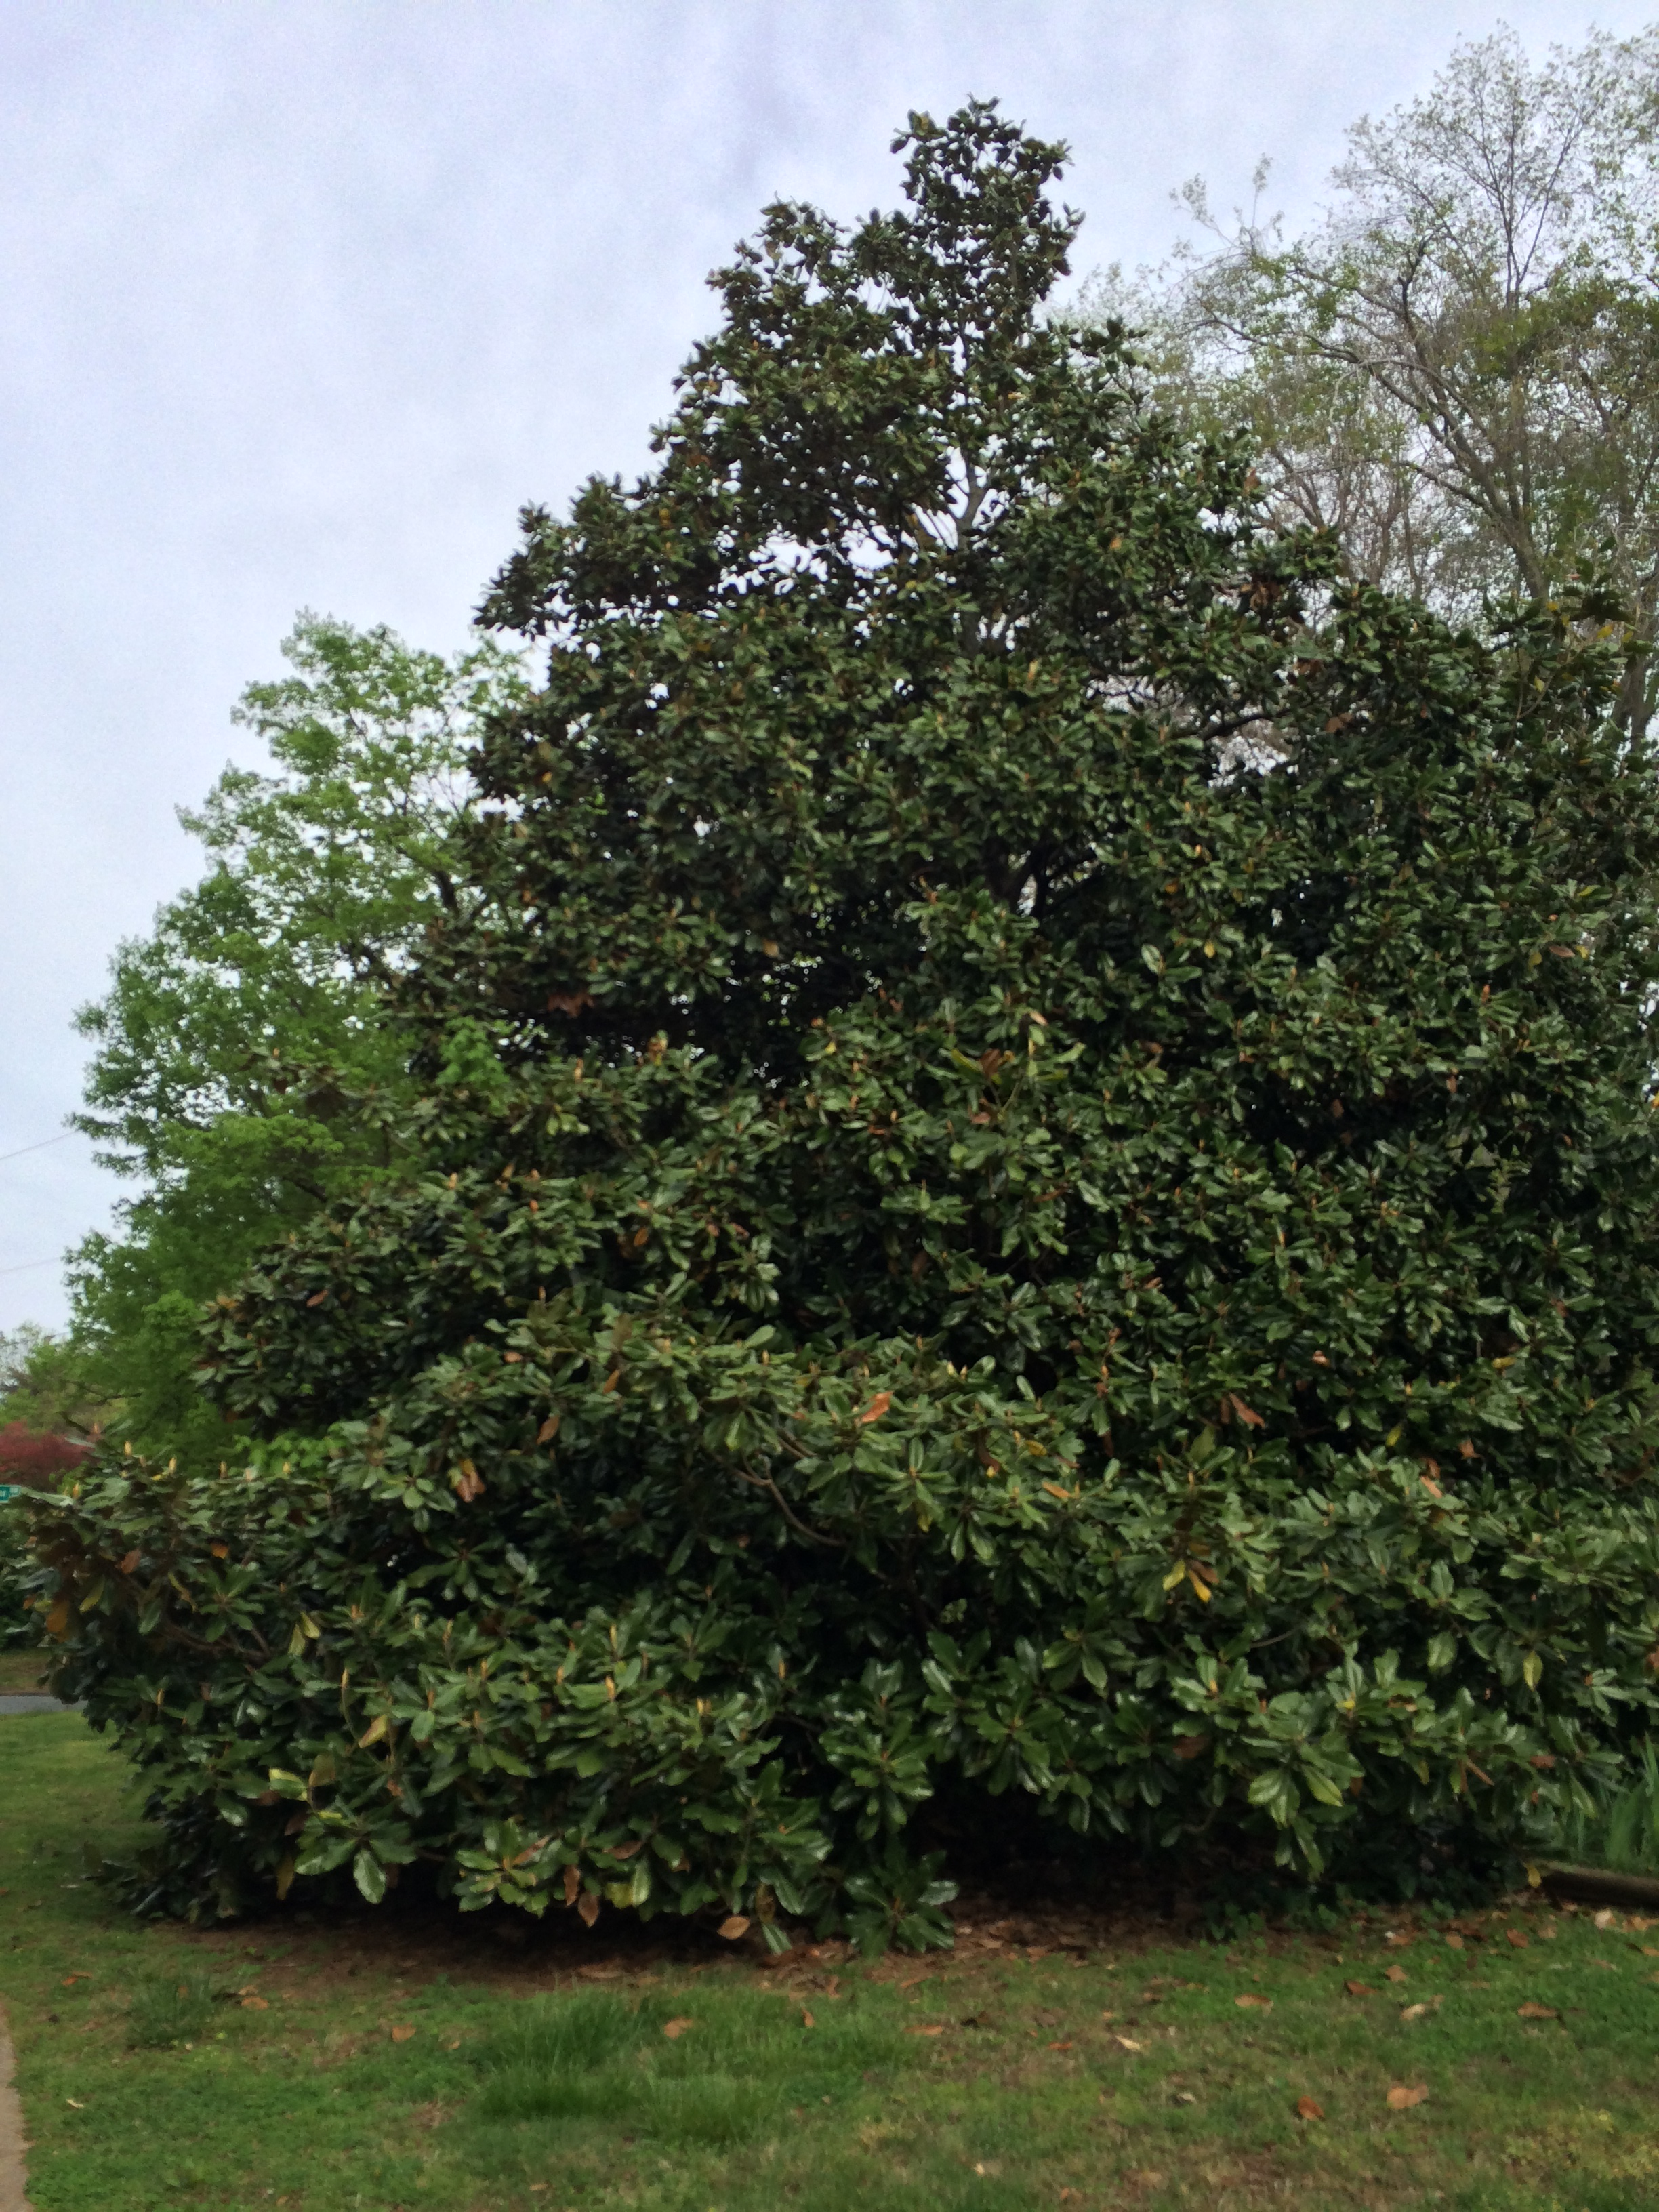 magnolia trees (I think)...